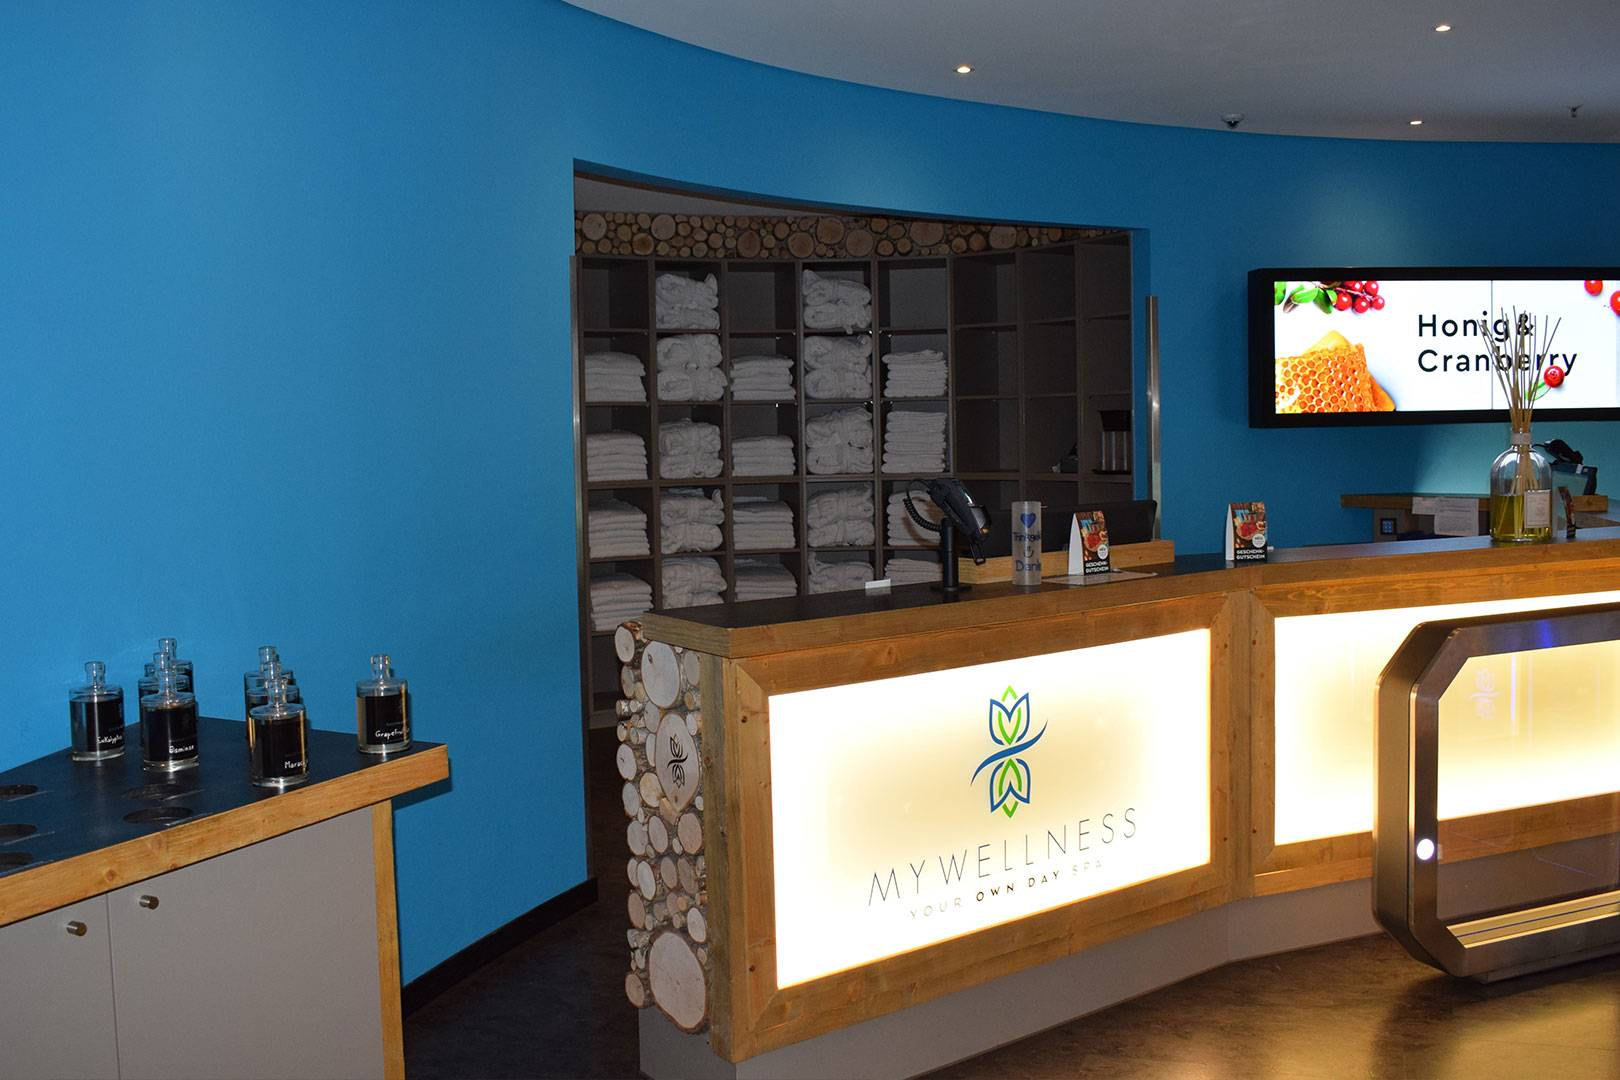 Wellness In Wiesbaden Mywellness Berlin Kurfürstendamm